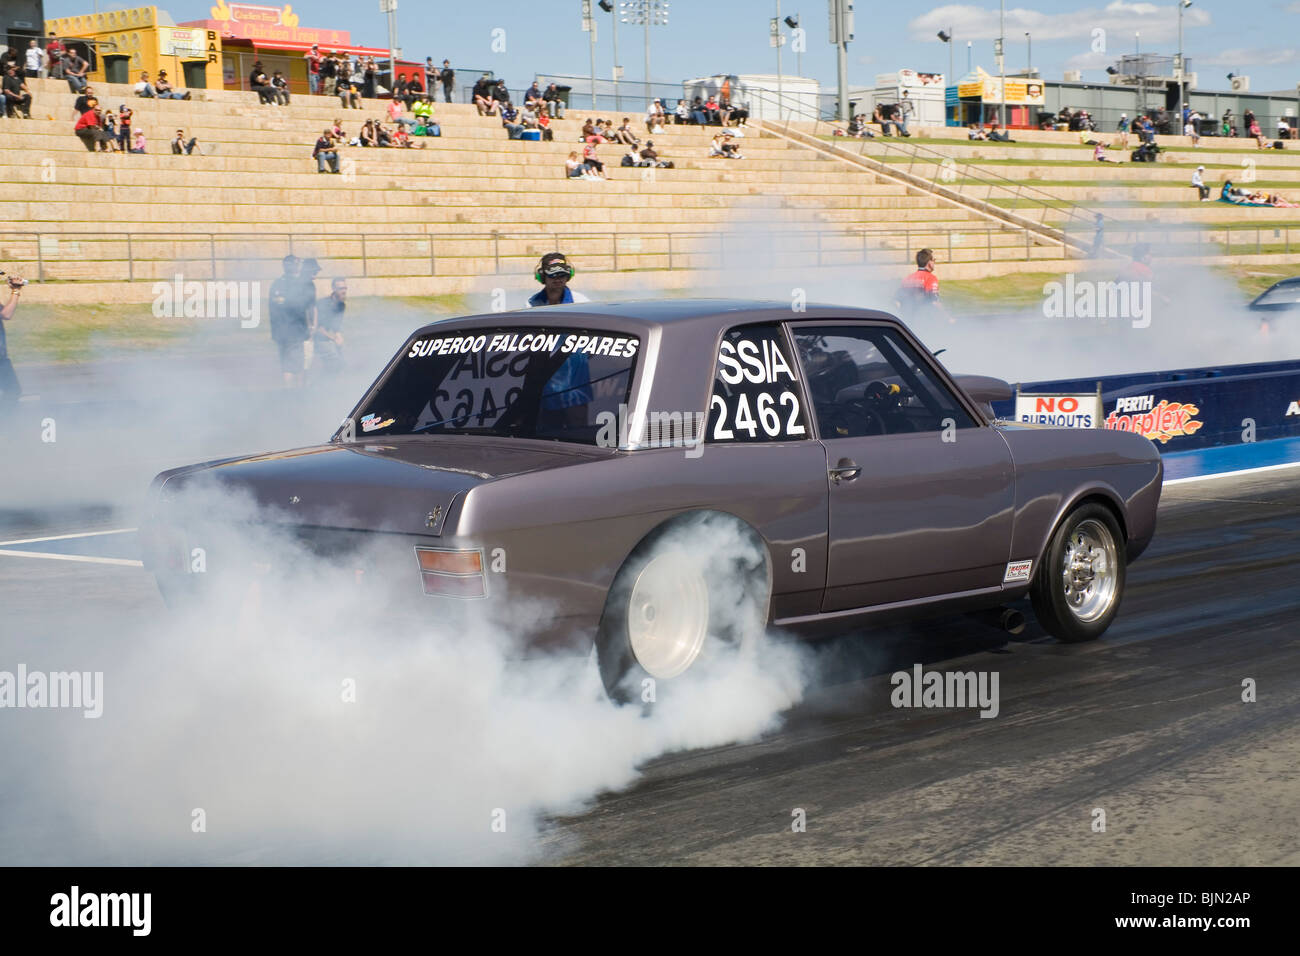 1960s Ford Cortina drag racing car performing a burnout prior to racing at the Perth Motorplex in Western Australia Stock Photo